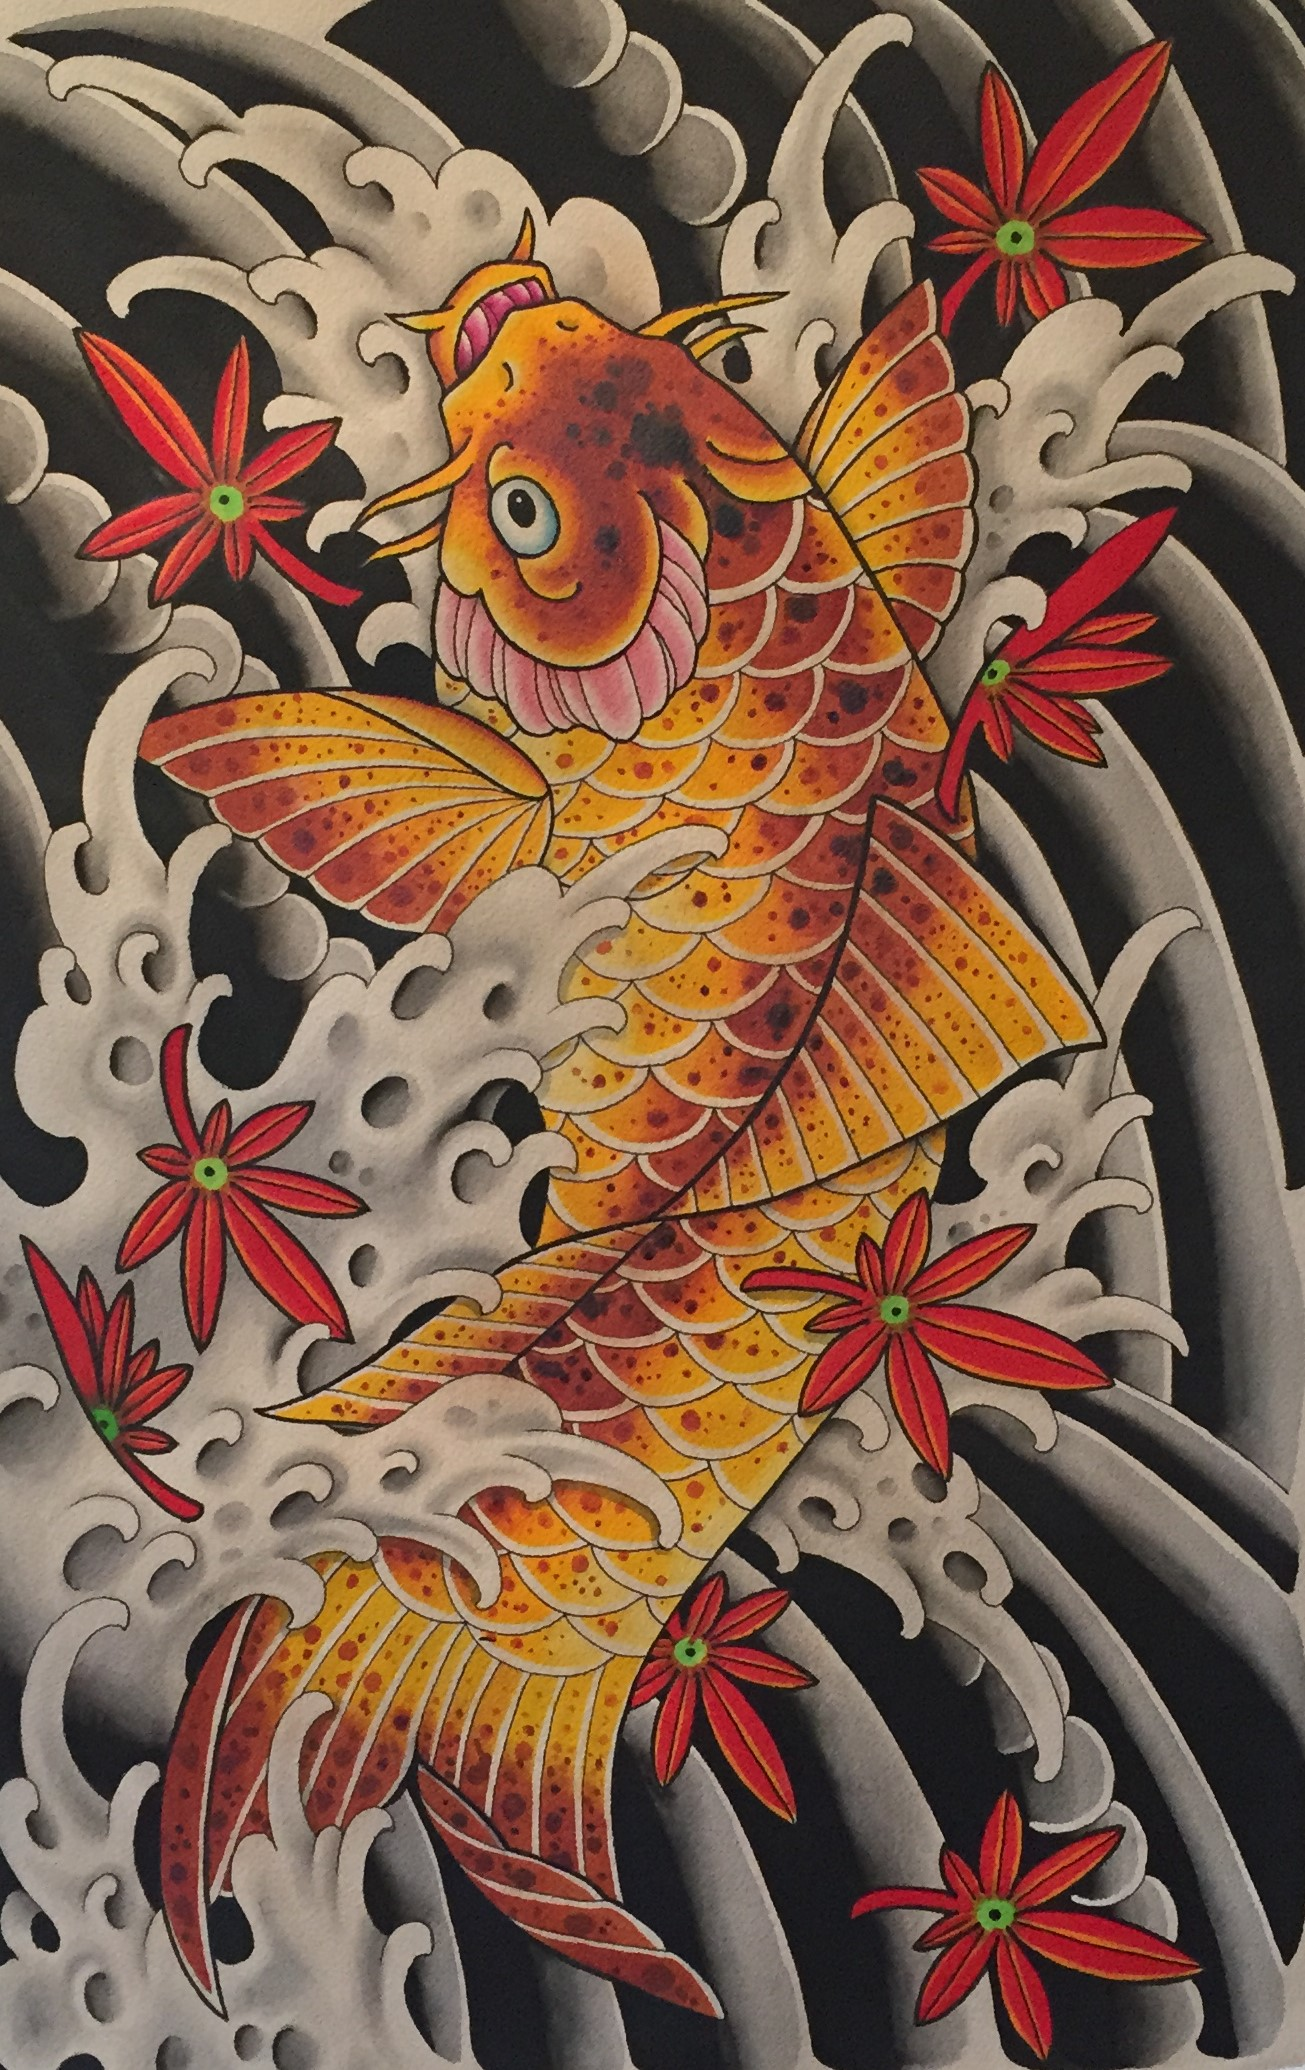 Japanese Koi Fish and Maple Leaves